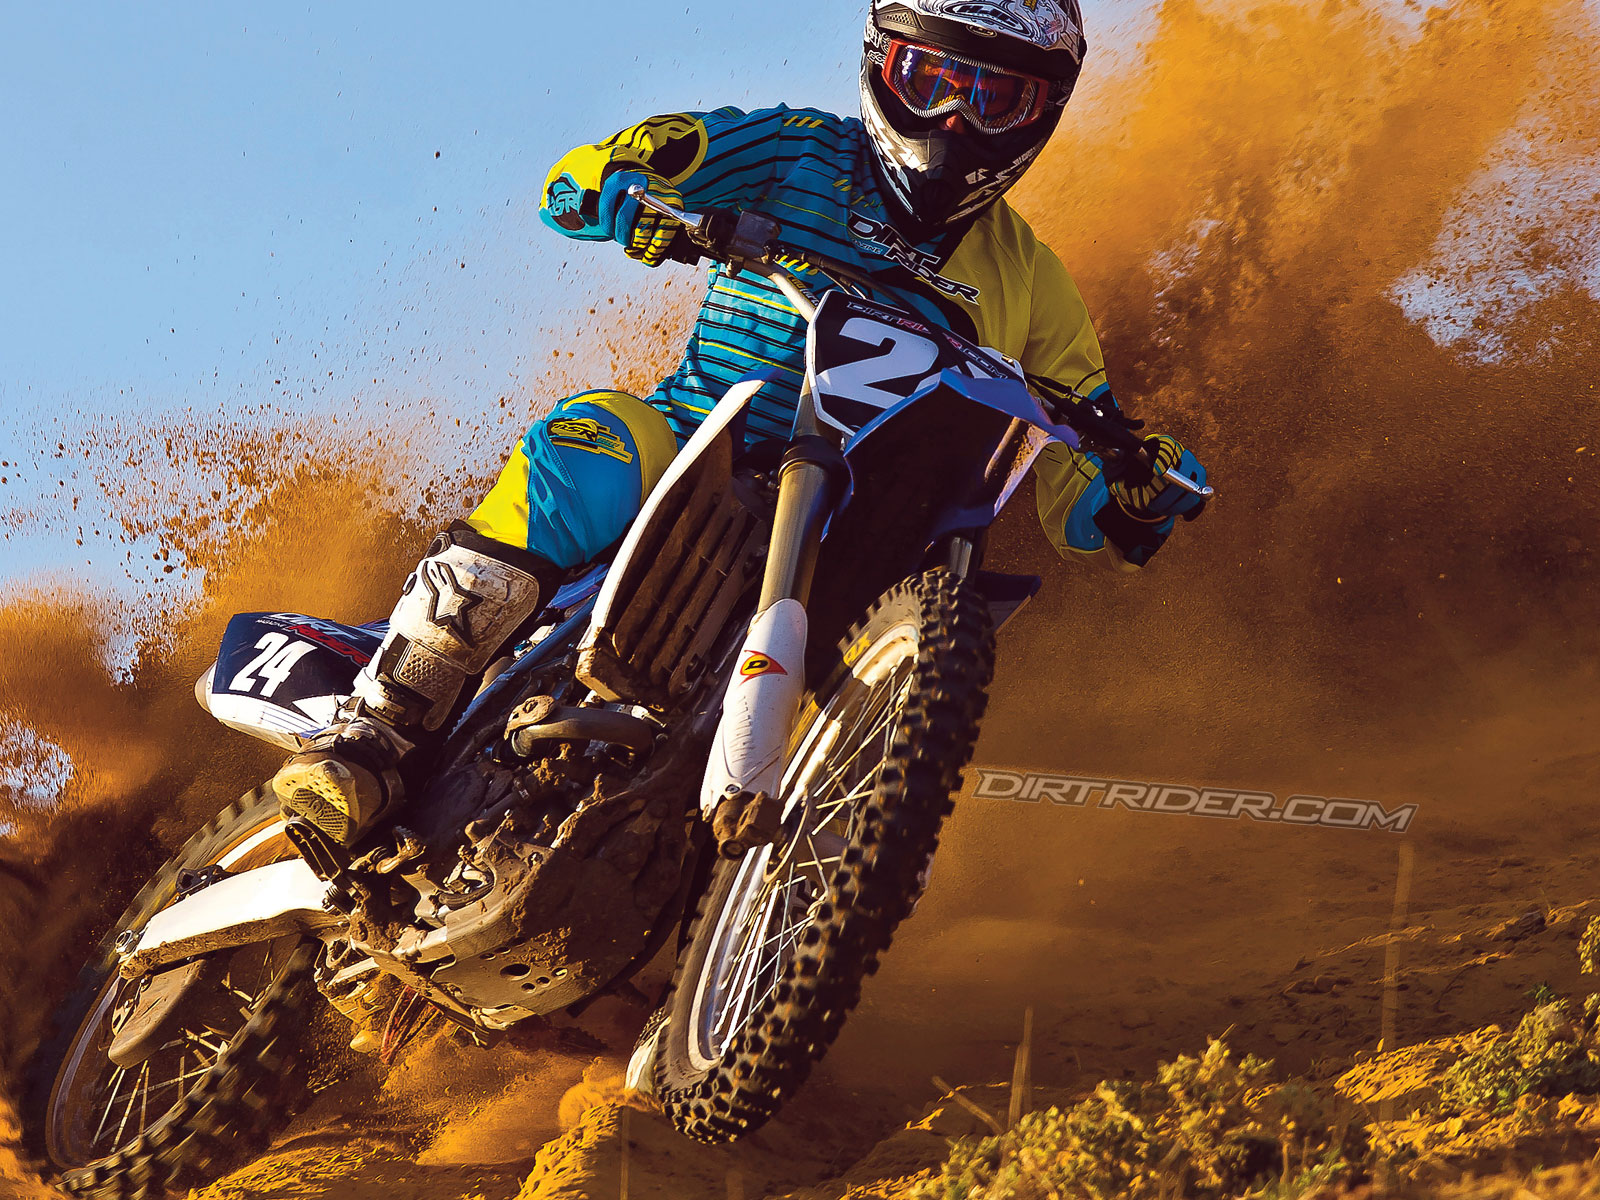 Dirt Bike Wallpaper